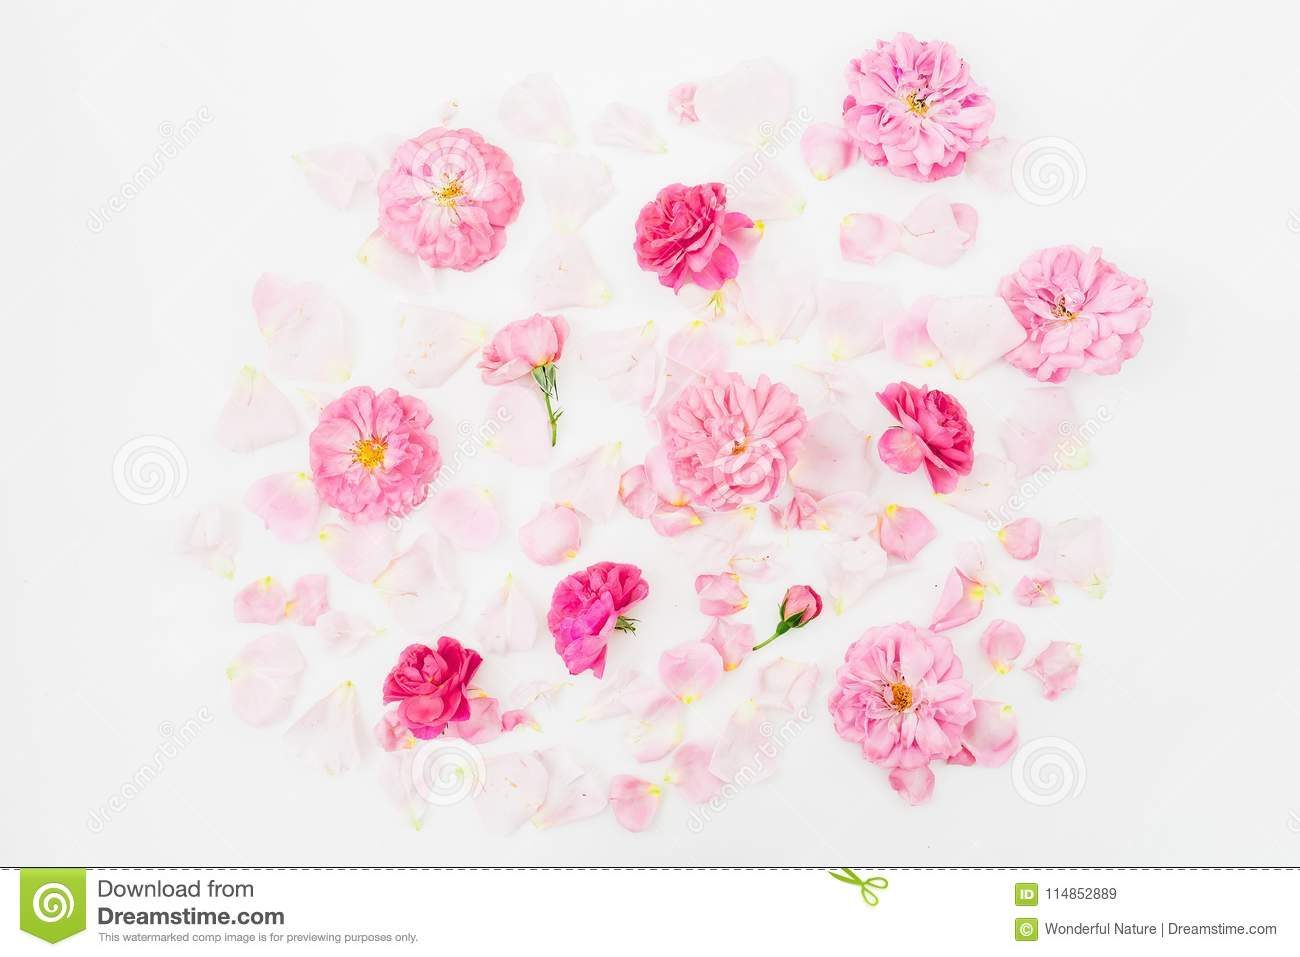 Pink rose flowers on white background. Flat lay, Top view. Flowers pattern texture.